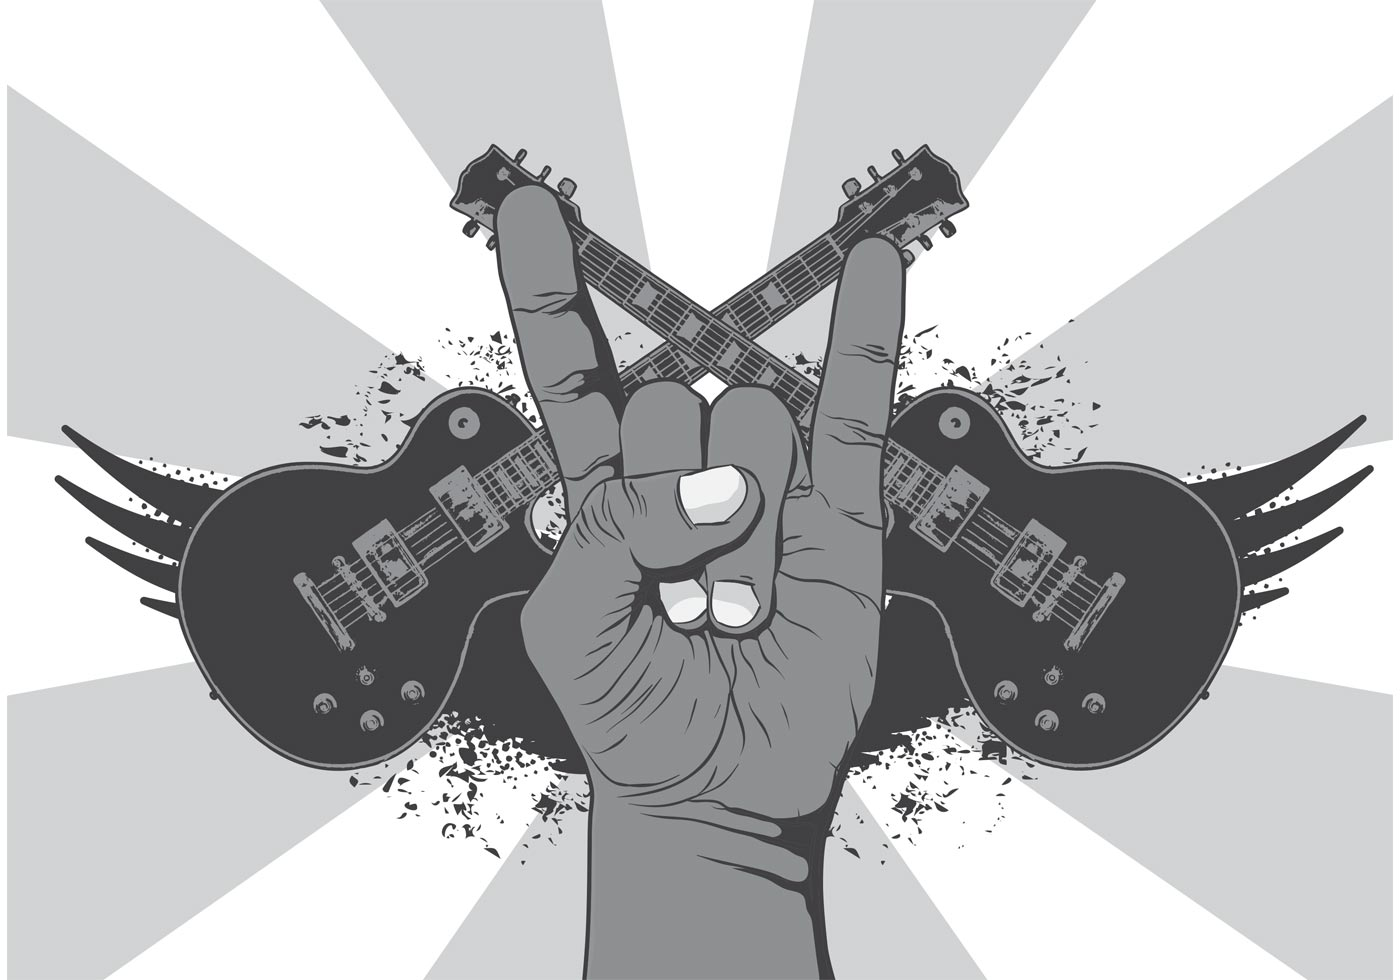 Rock Music Wallpaper: Rock N Roll Music Symbol Vector Background